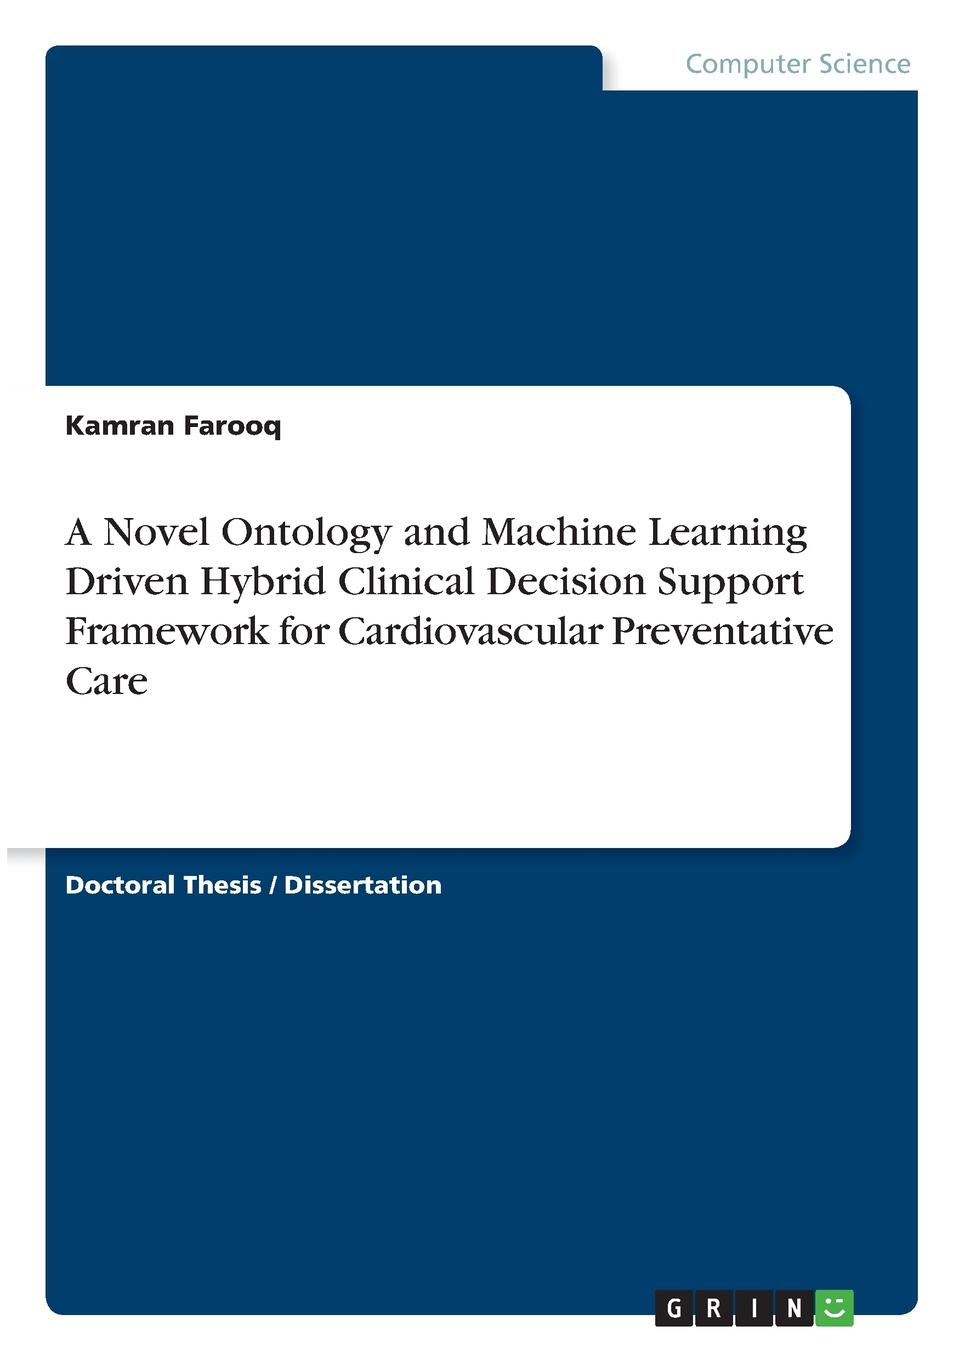 купить Kamran Farooq A Novel Ontology and Machine Learning Driven Hybrid Clinical Decision Support Framework for Cardiovascular Preventative Care по цене 6202 рублей